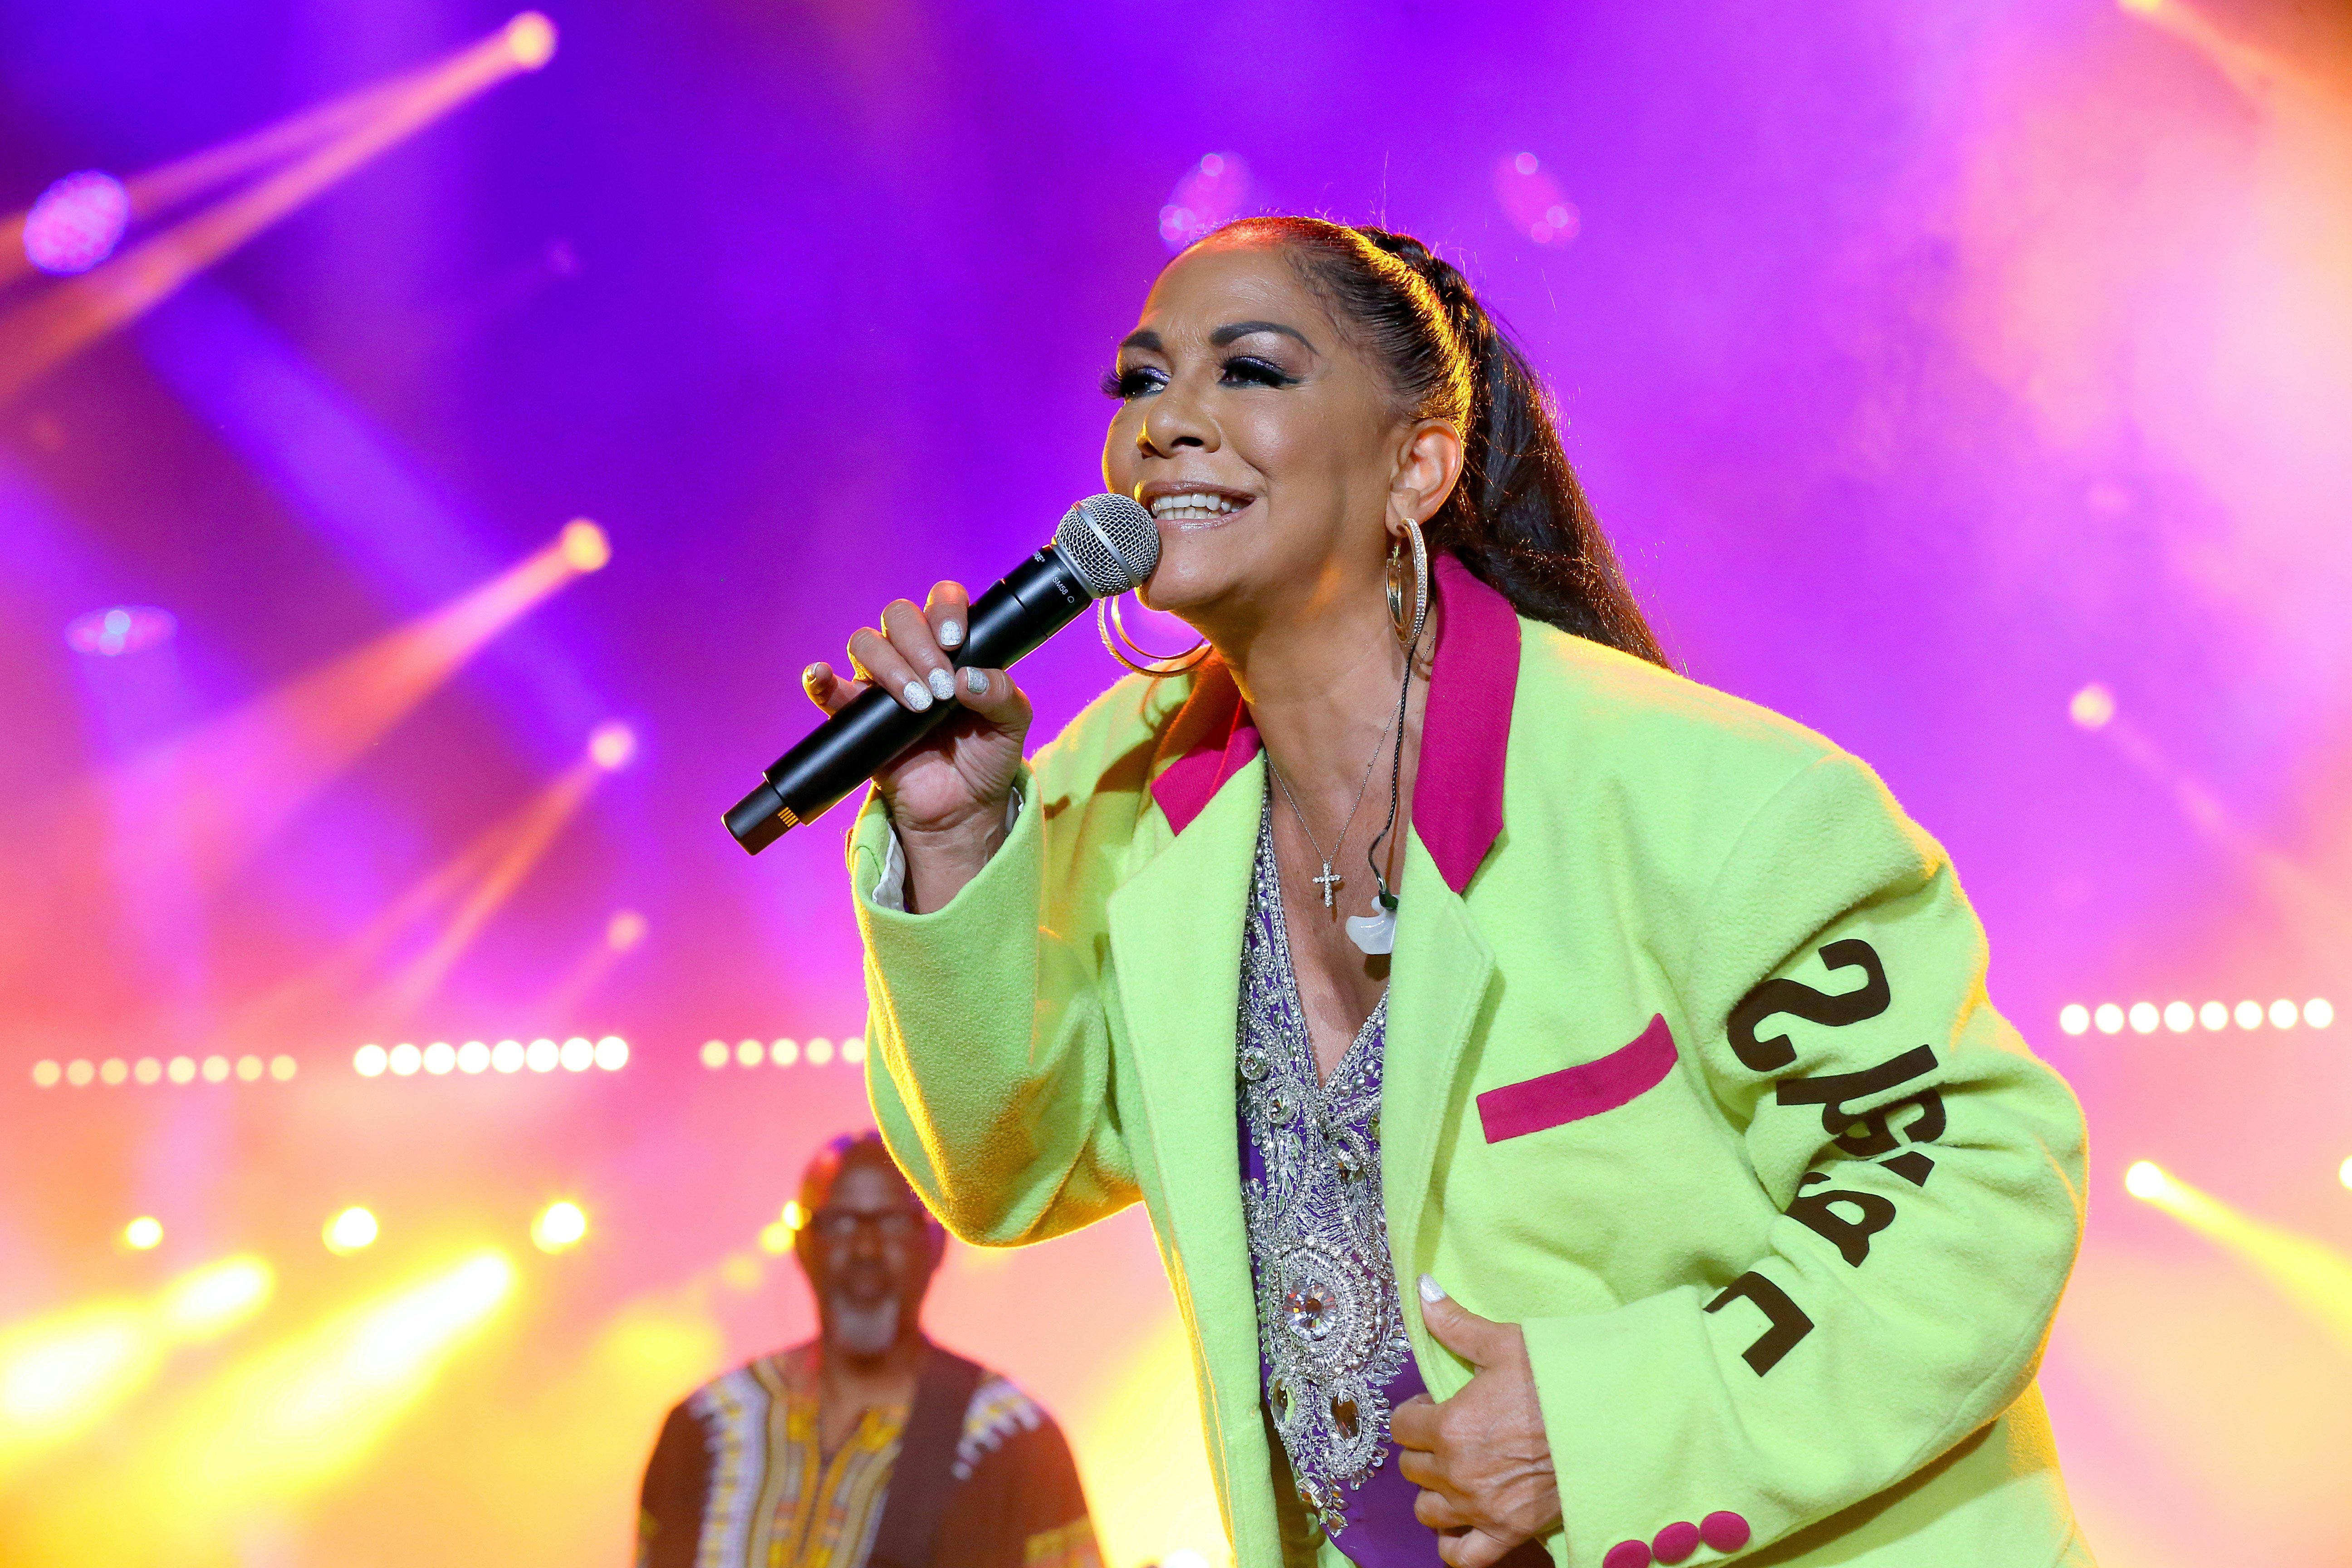 Sheila E during ESSENCE Festival on July 05, 2019 in New Orleans, Louisiana   Photo: Getty Images